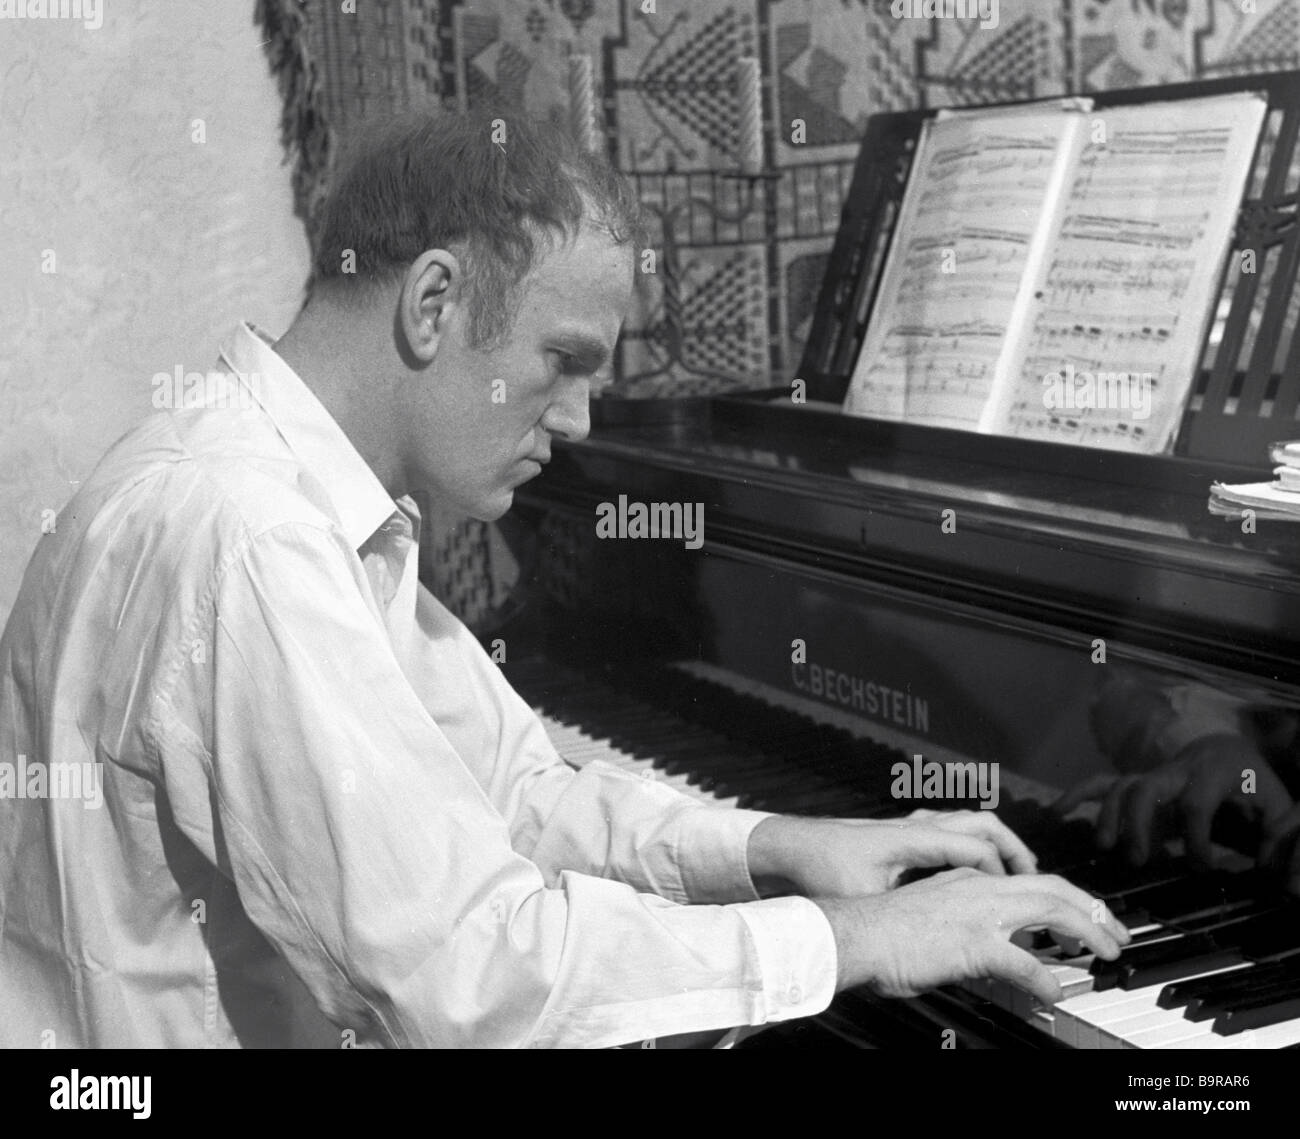 Pianist Concert Stock Photos & Pianist Concert Stock Images - Alamy